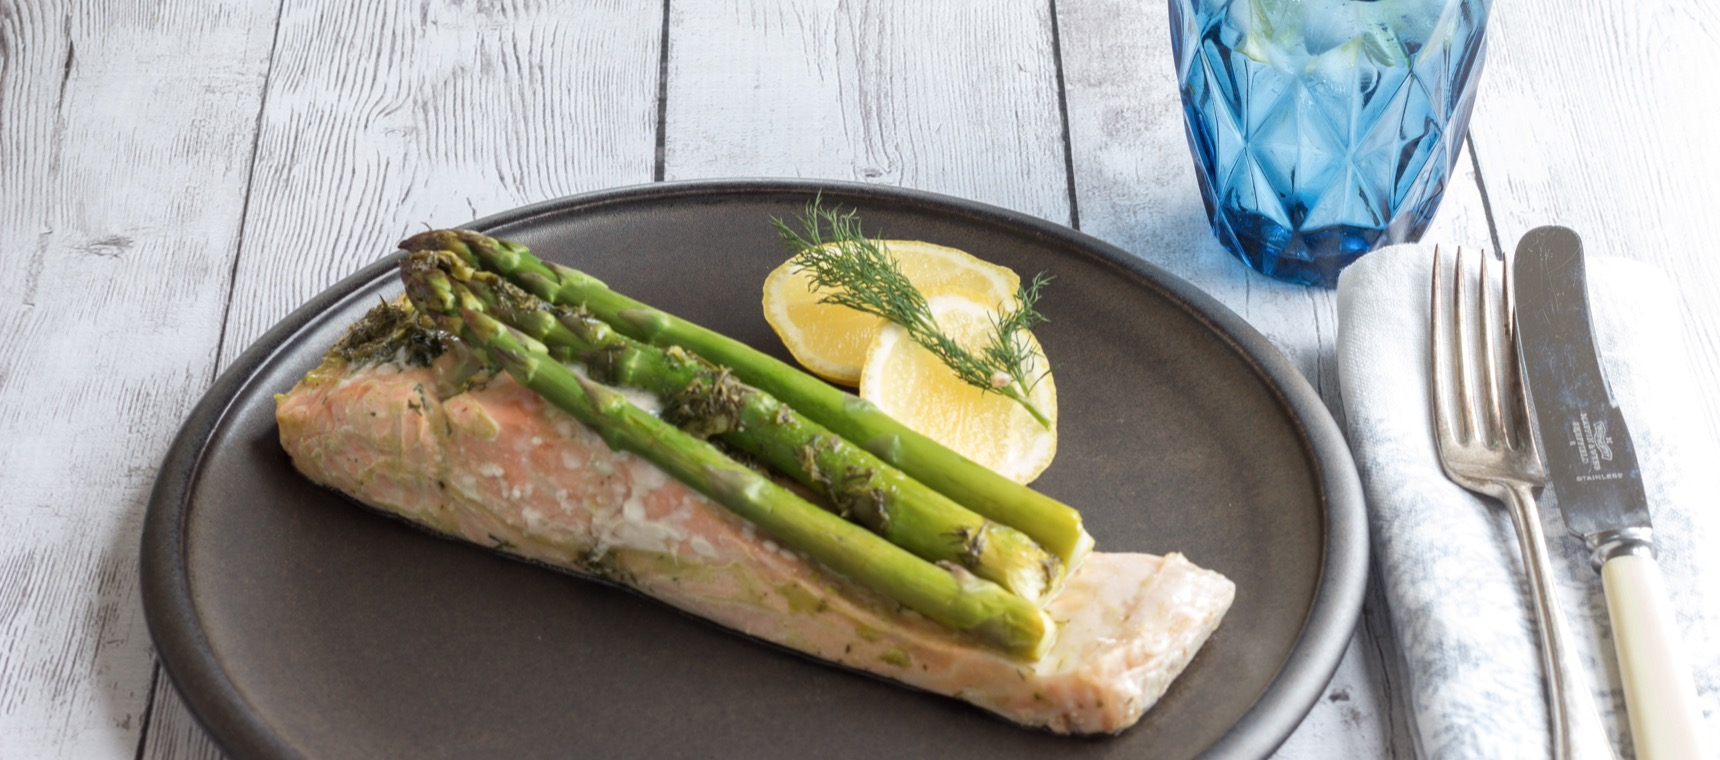 Lemon and Dill Salmon Parcels with Asparagus